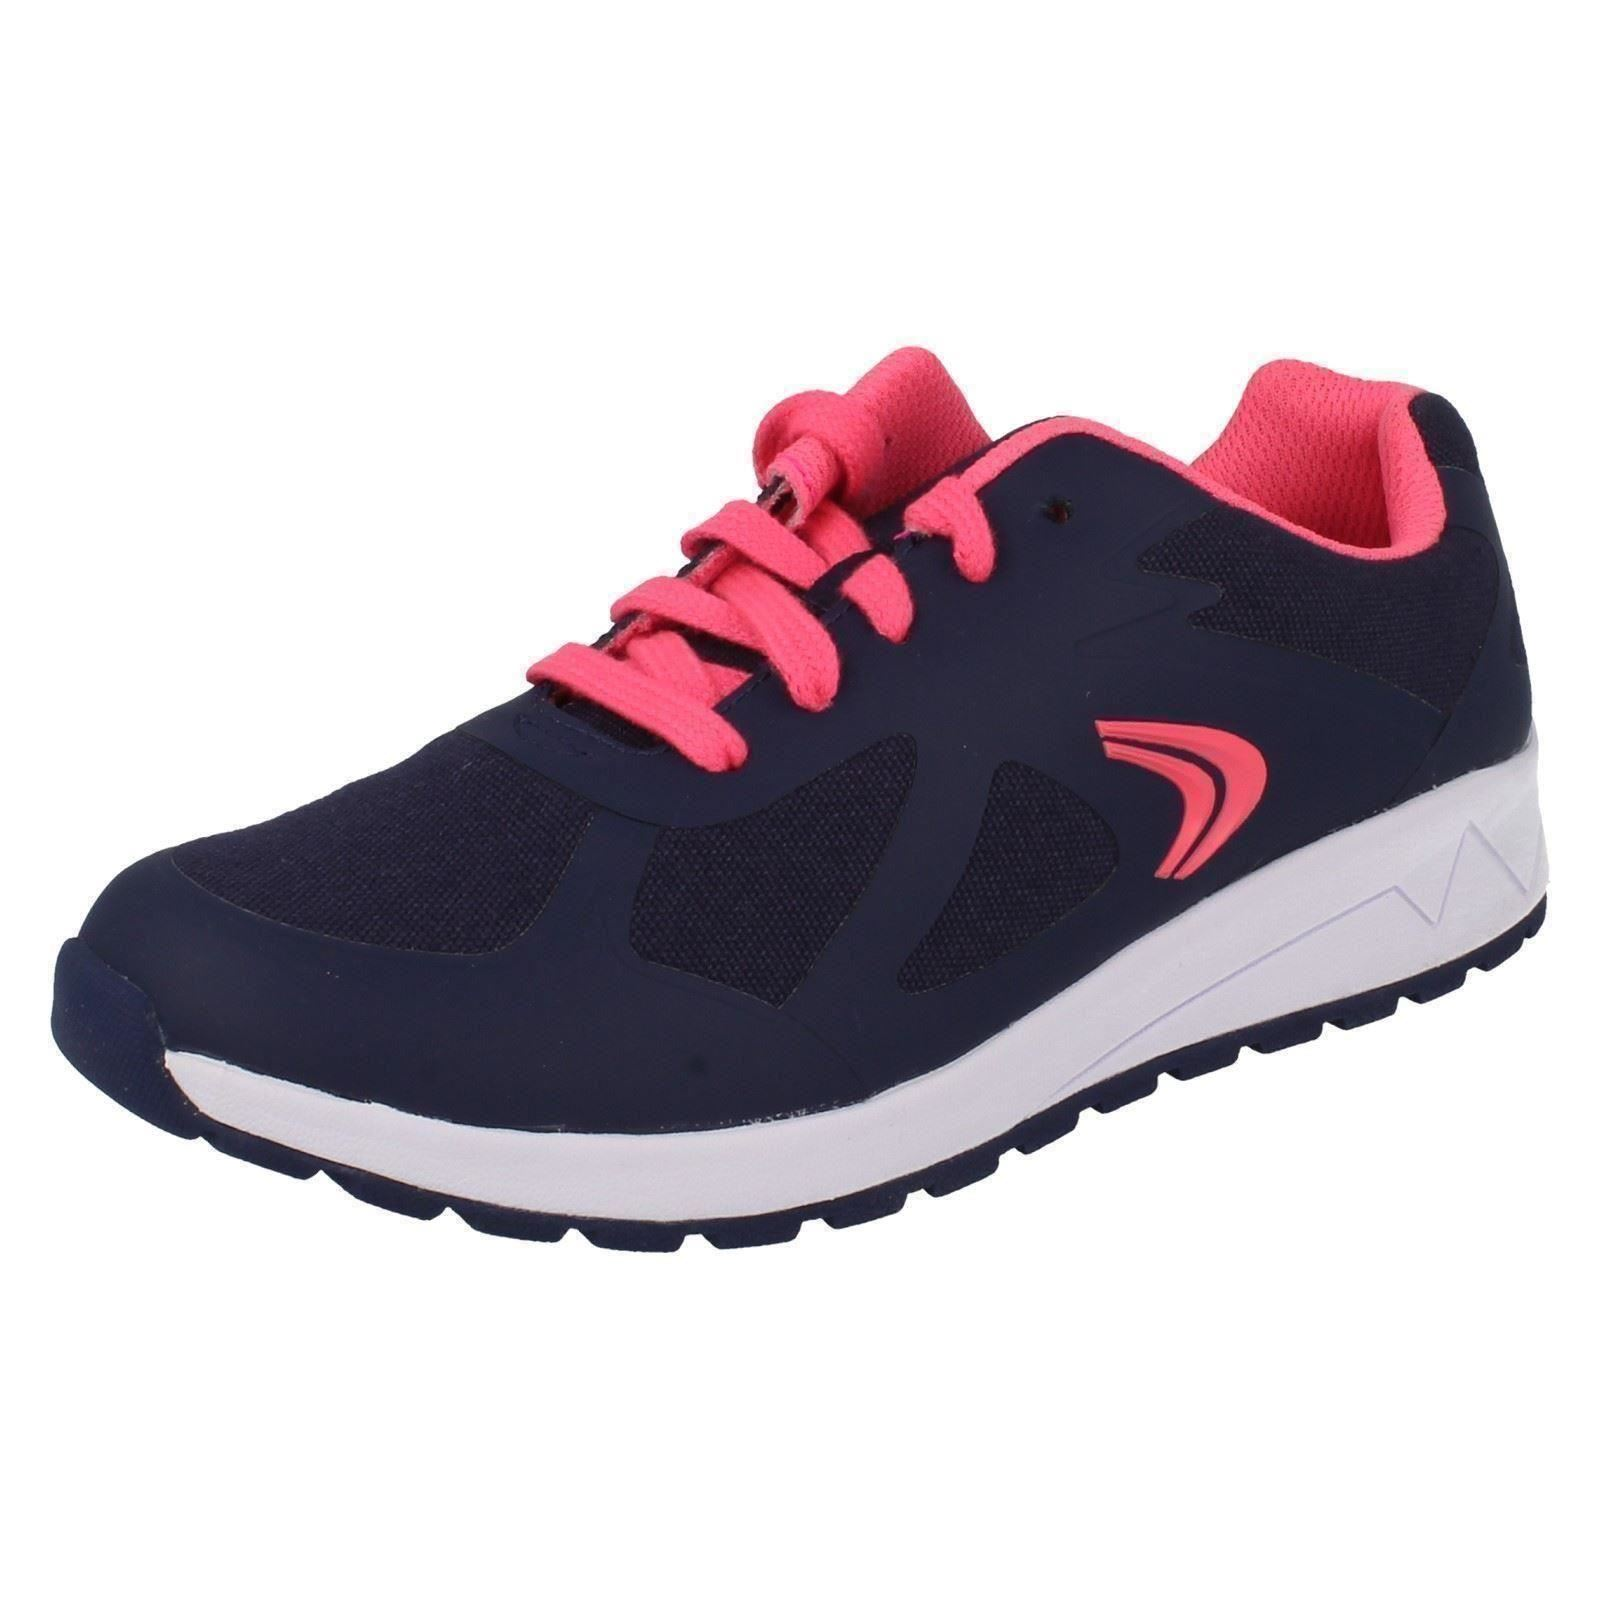 ADVEN MAZE CICA CLARKS GIRLS NAVY COMBI LACE UP LIGHTWEIGHT TRAINERS SHOES SIZE